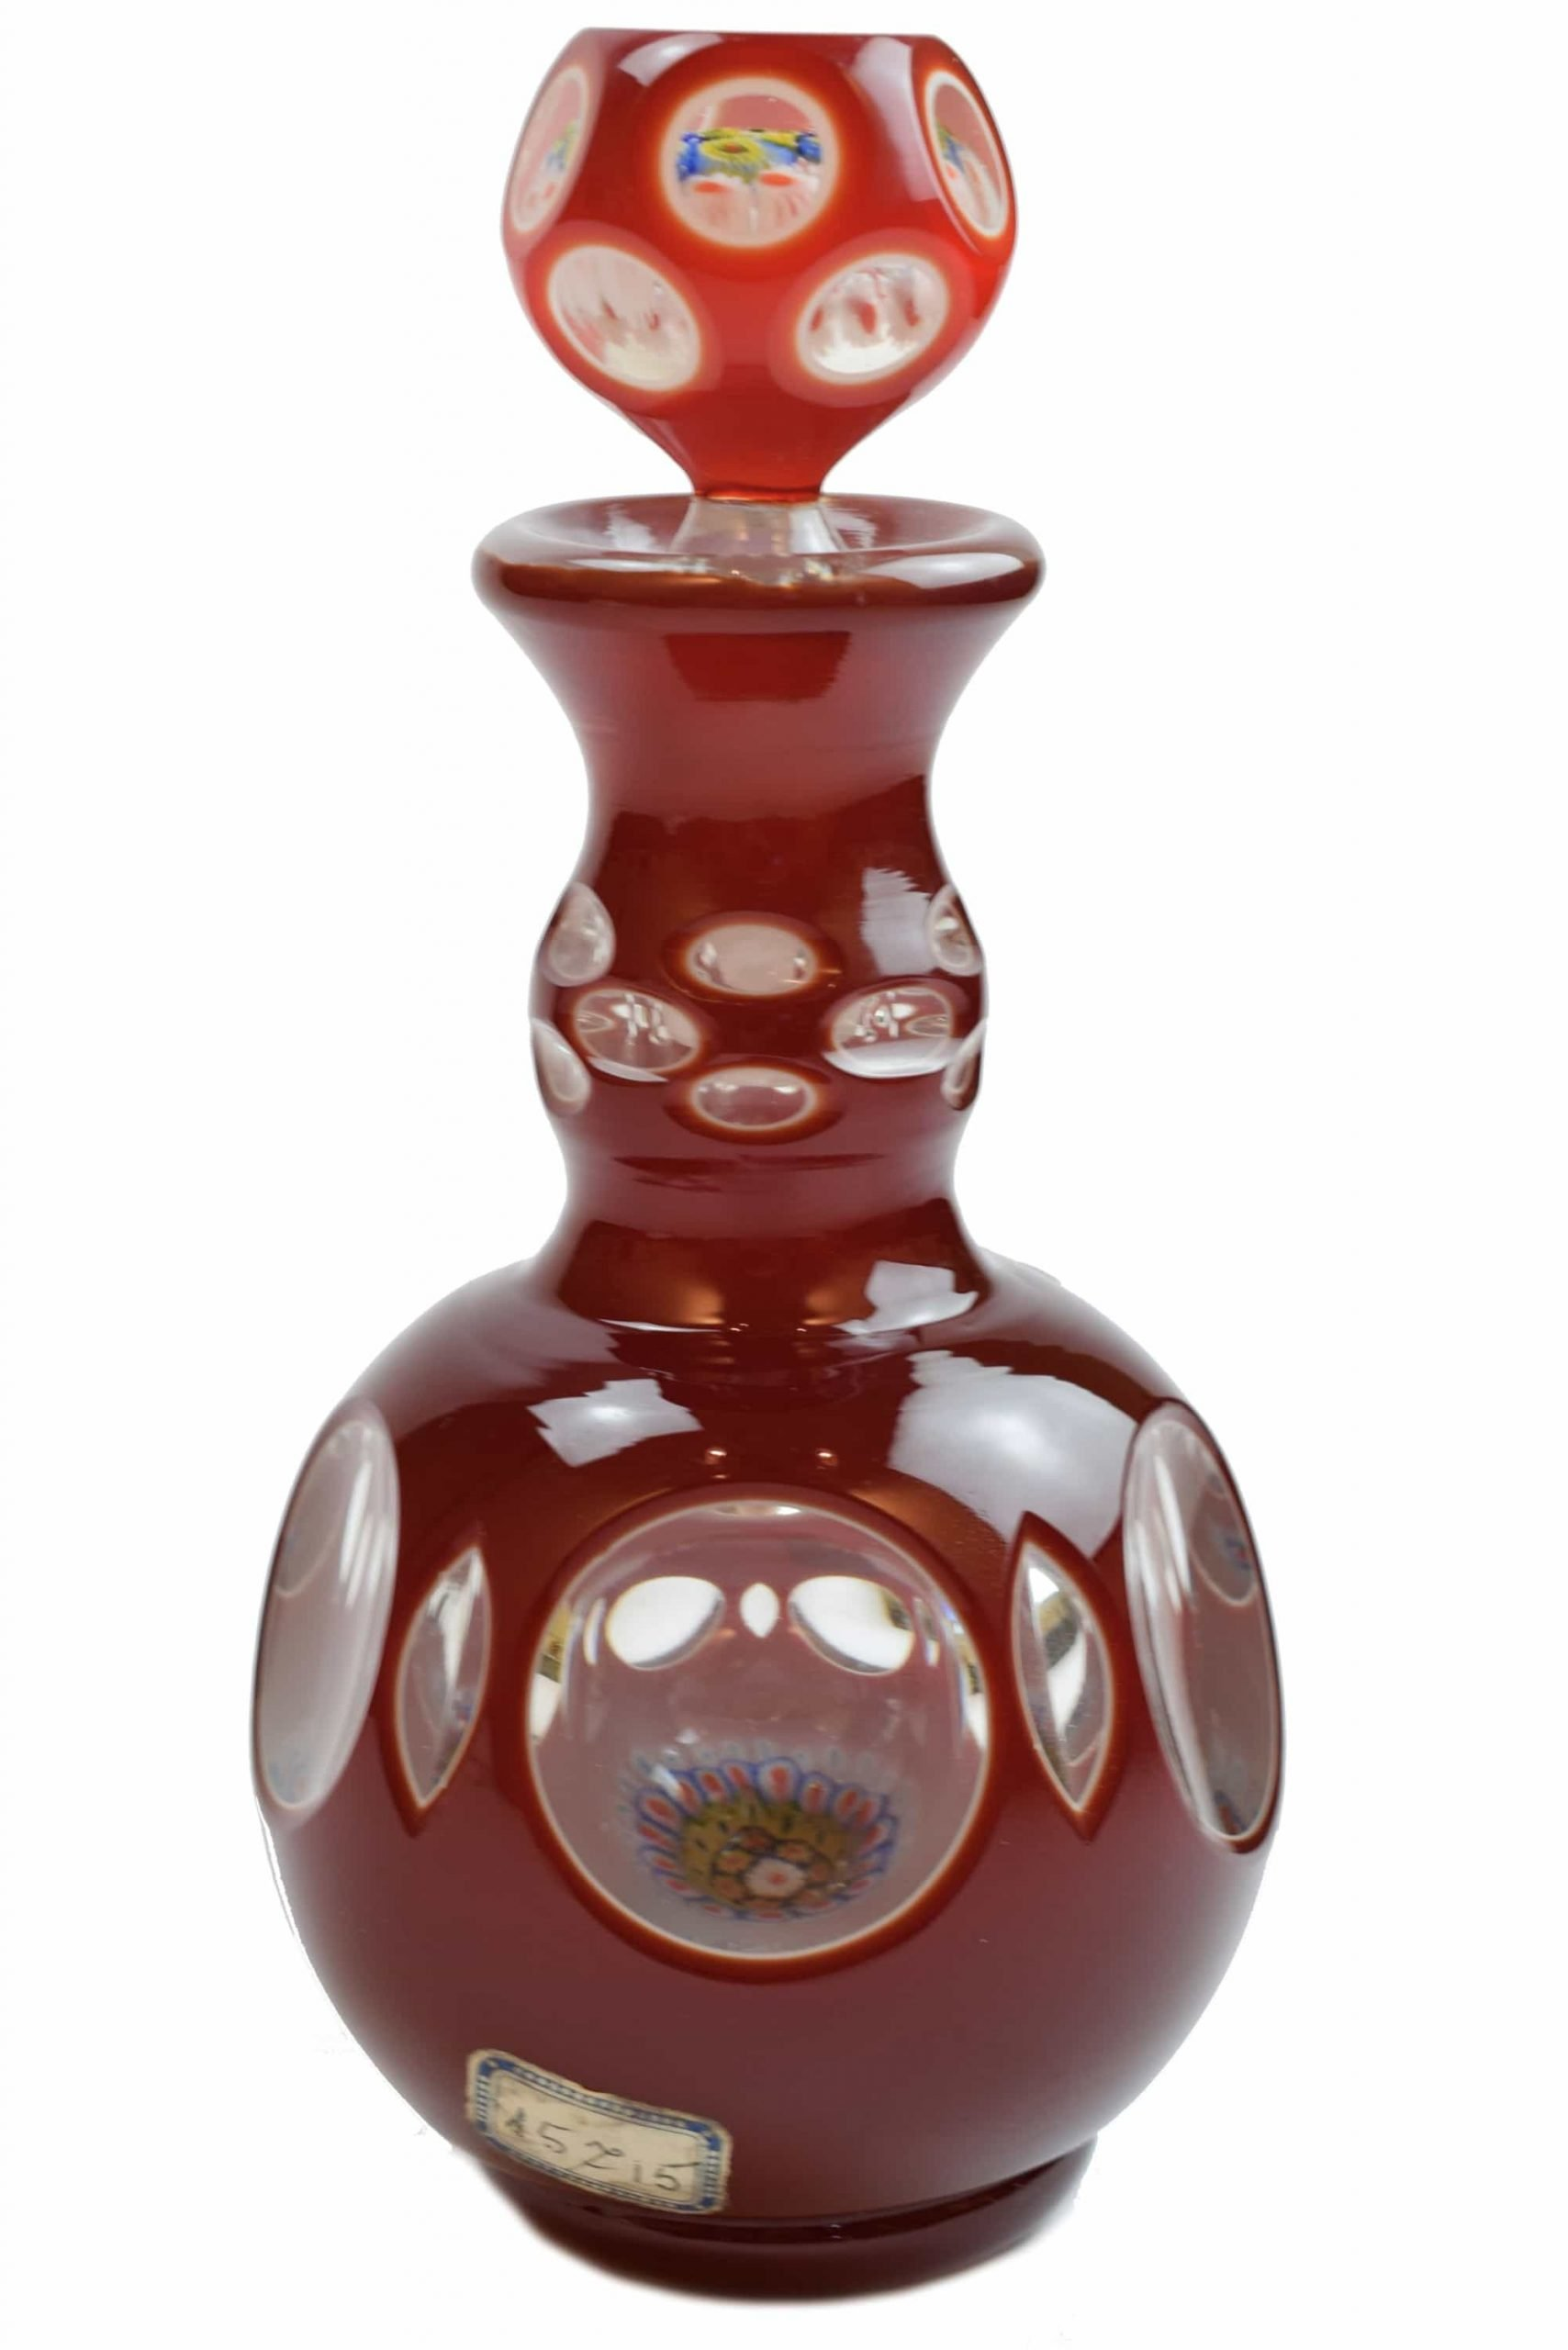 Murano glass bottle